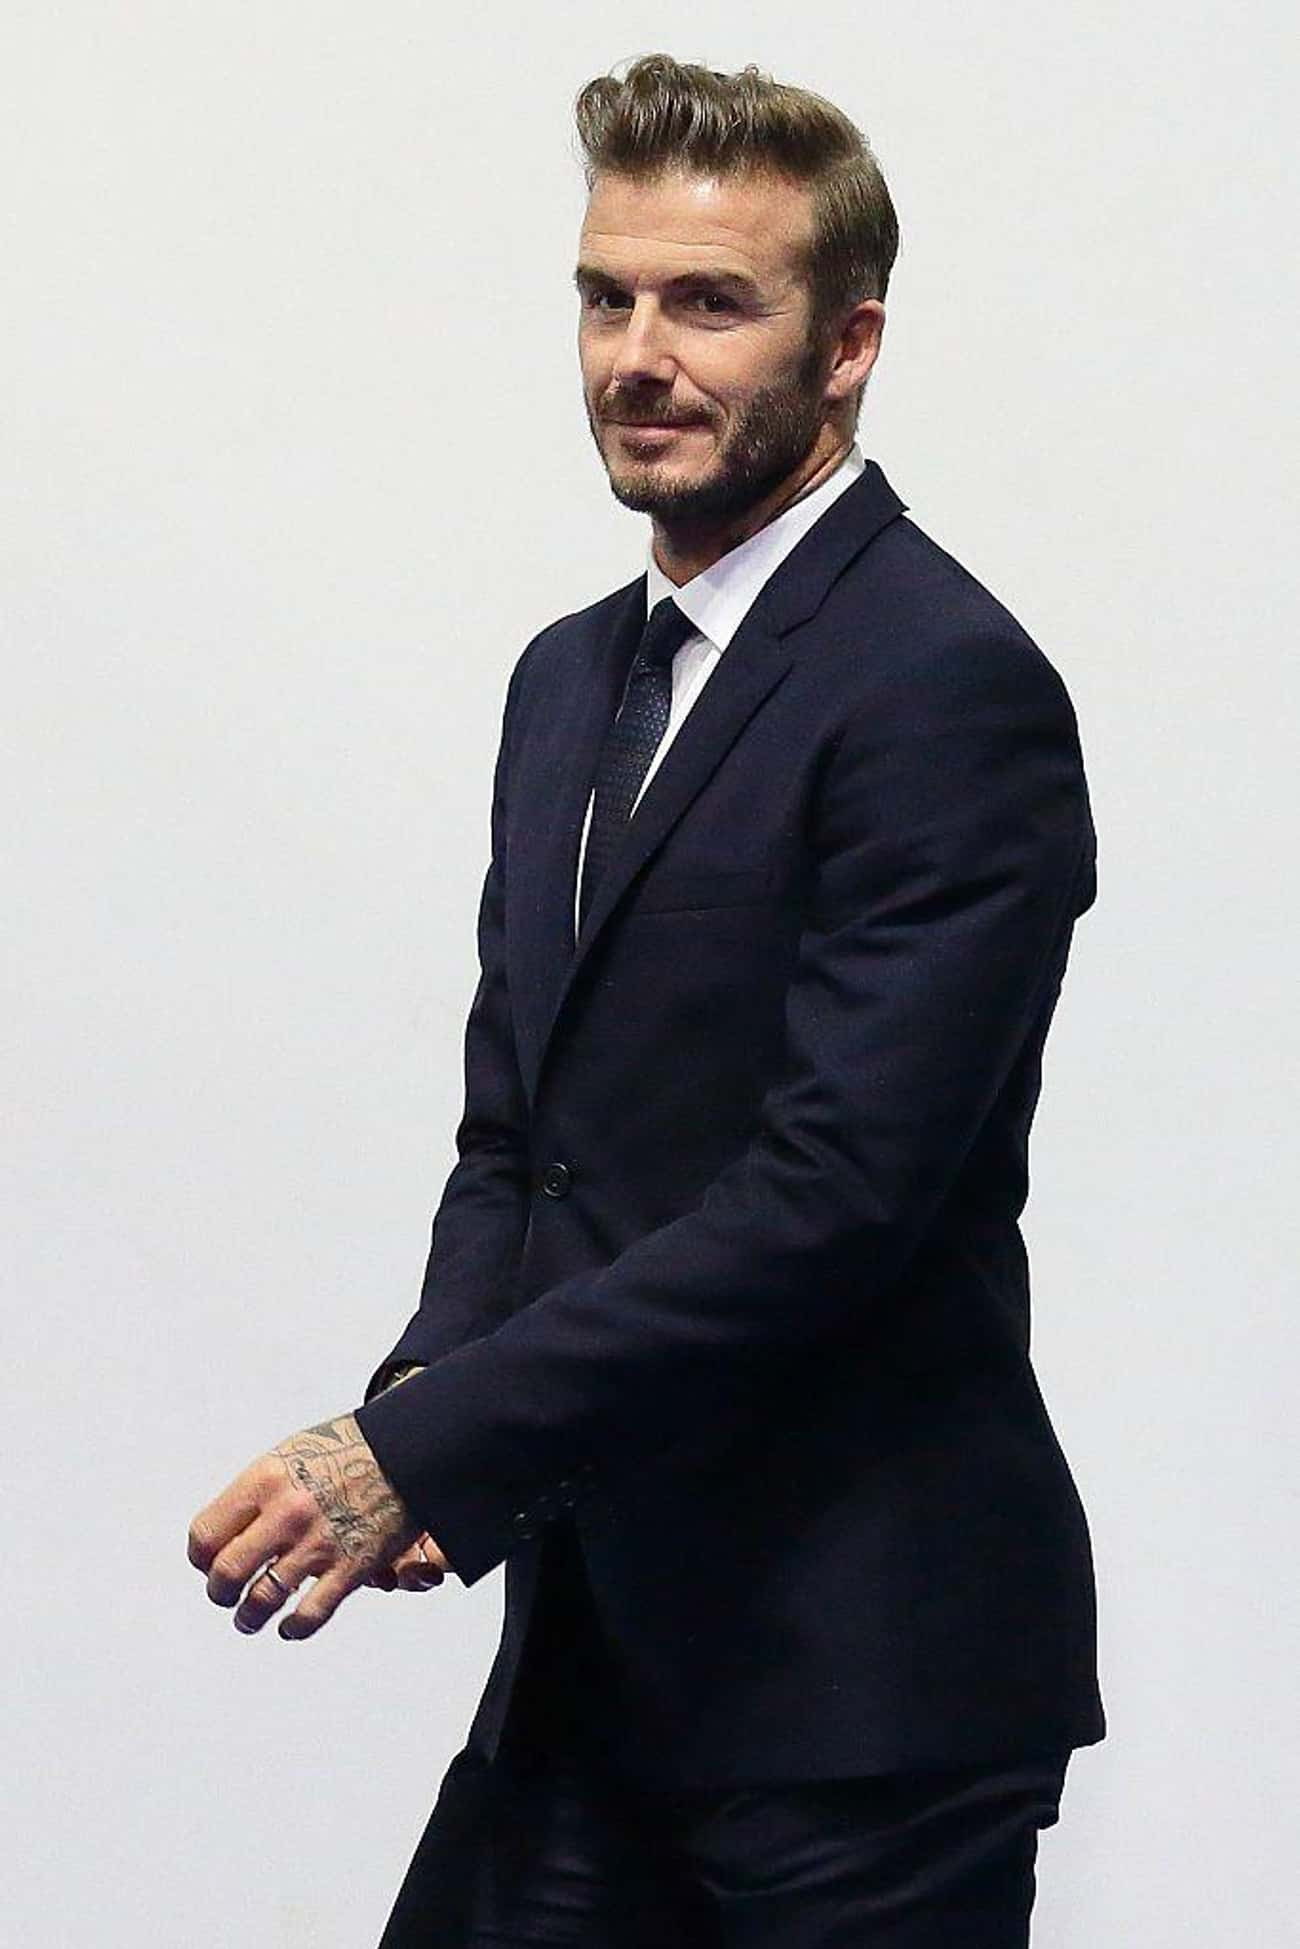 David Beckham is listed (or ranked) 4 on the list 24 Celebrities With Sleeve Tattoos